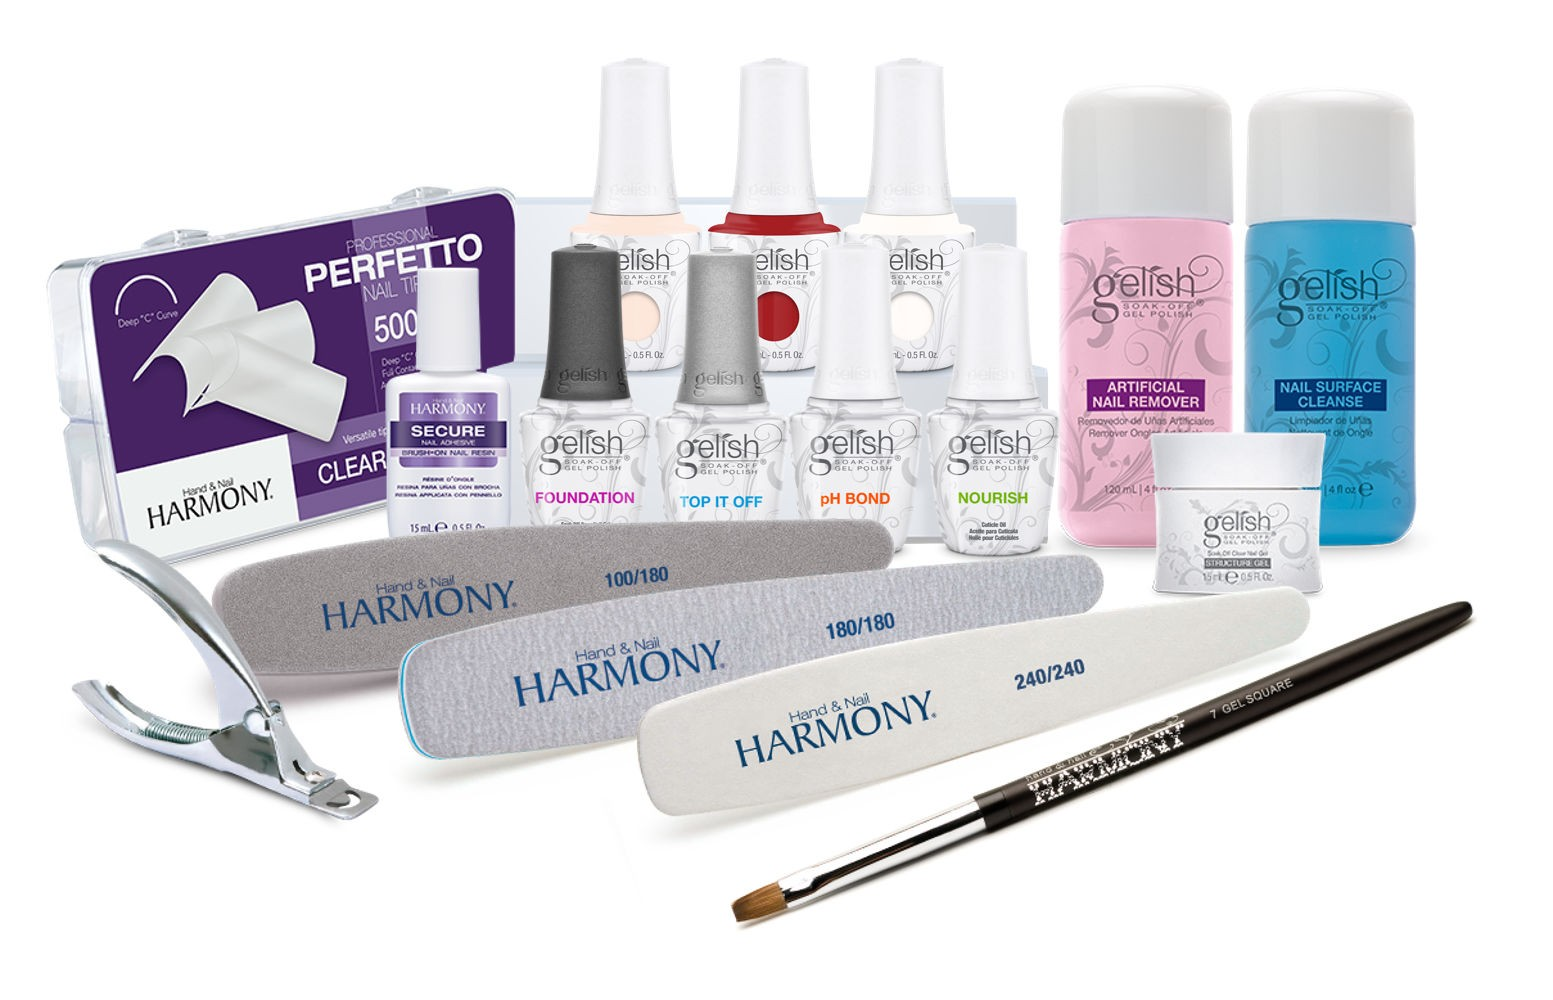 Student Gelish Comprehensive Kit Lamp available separately